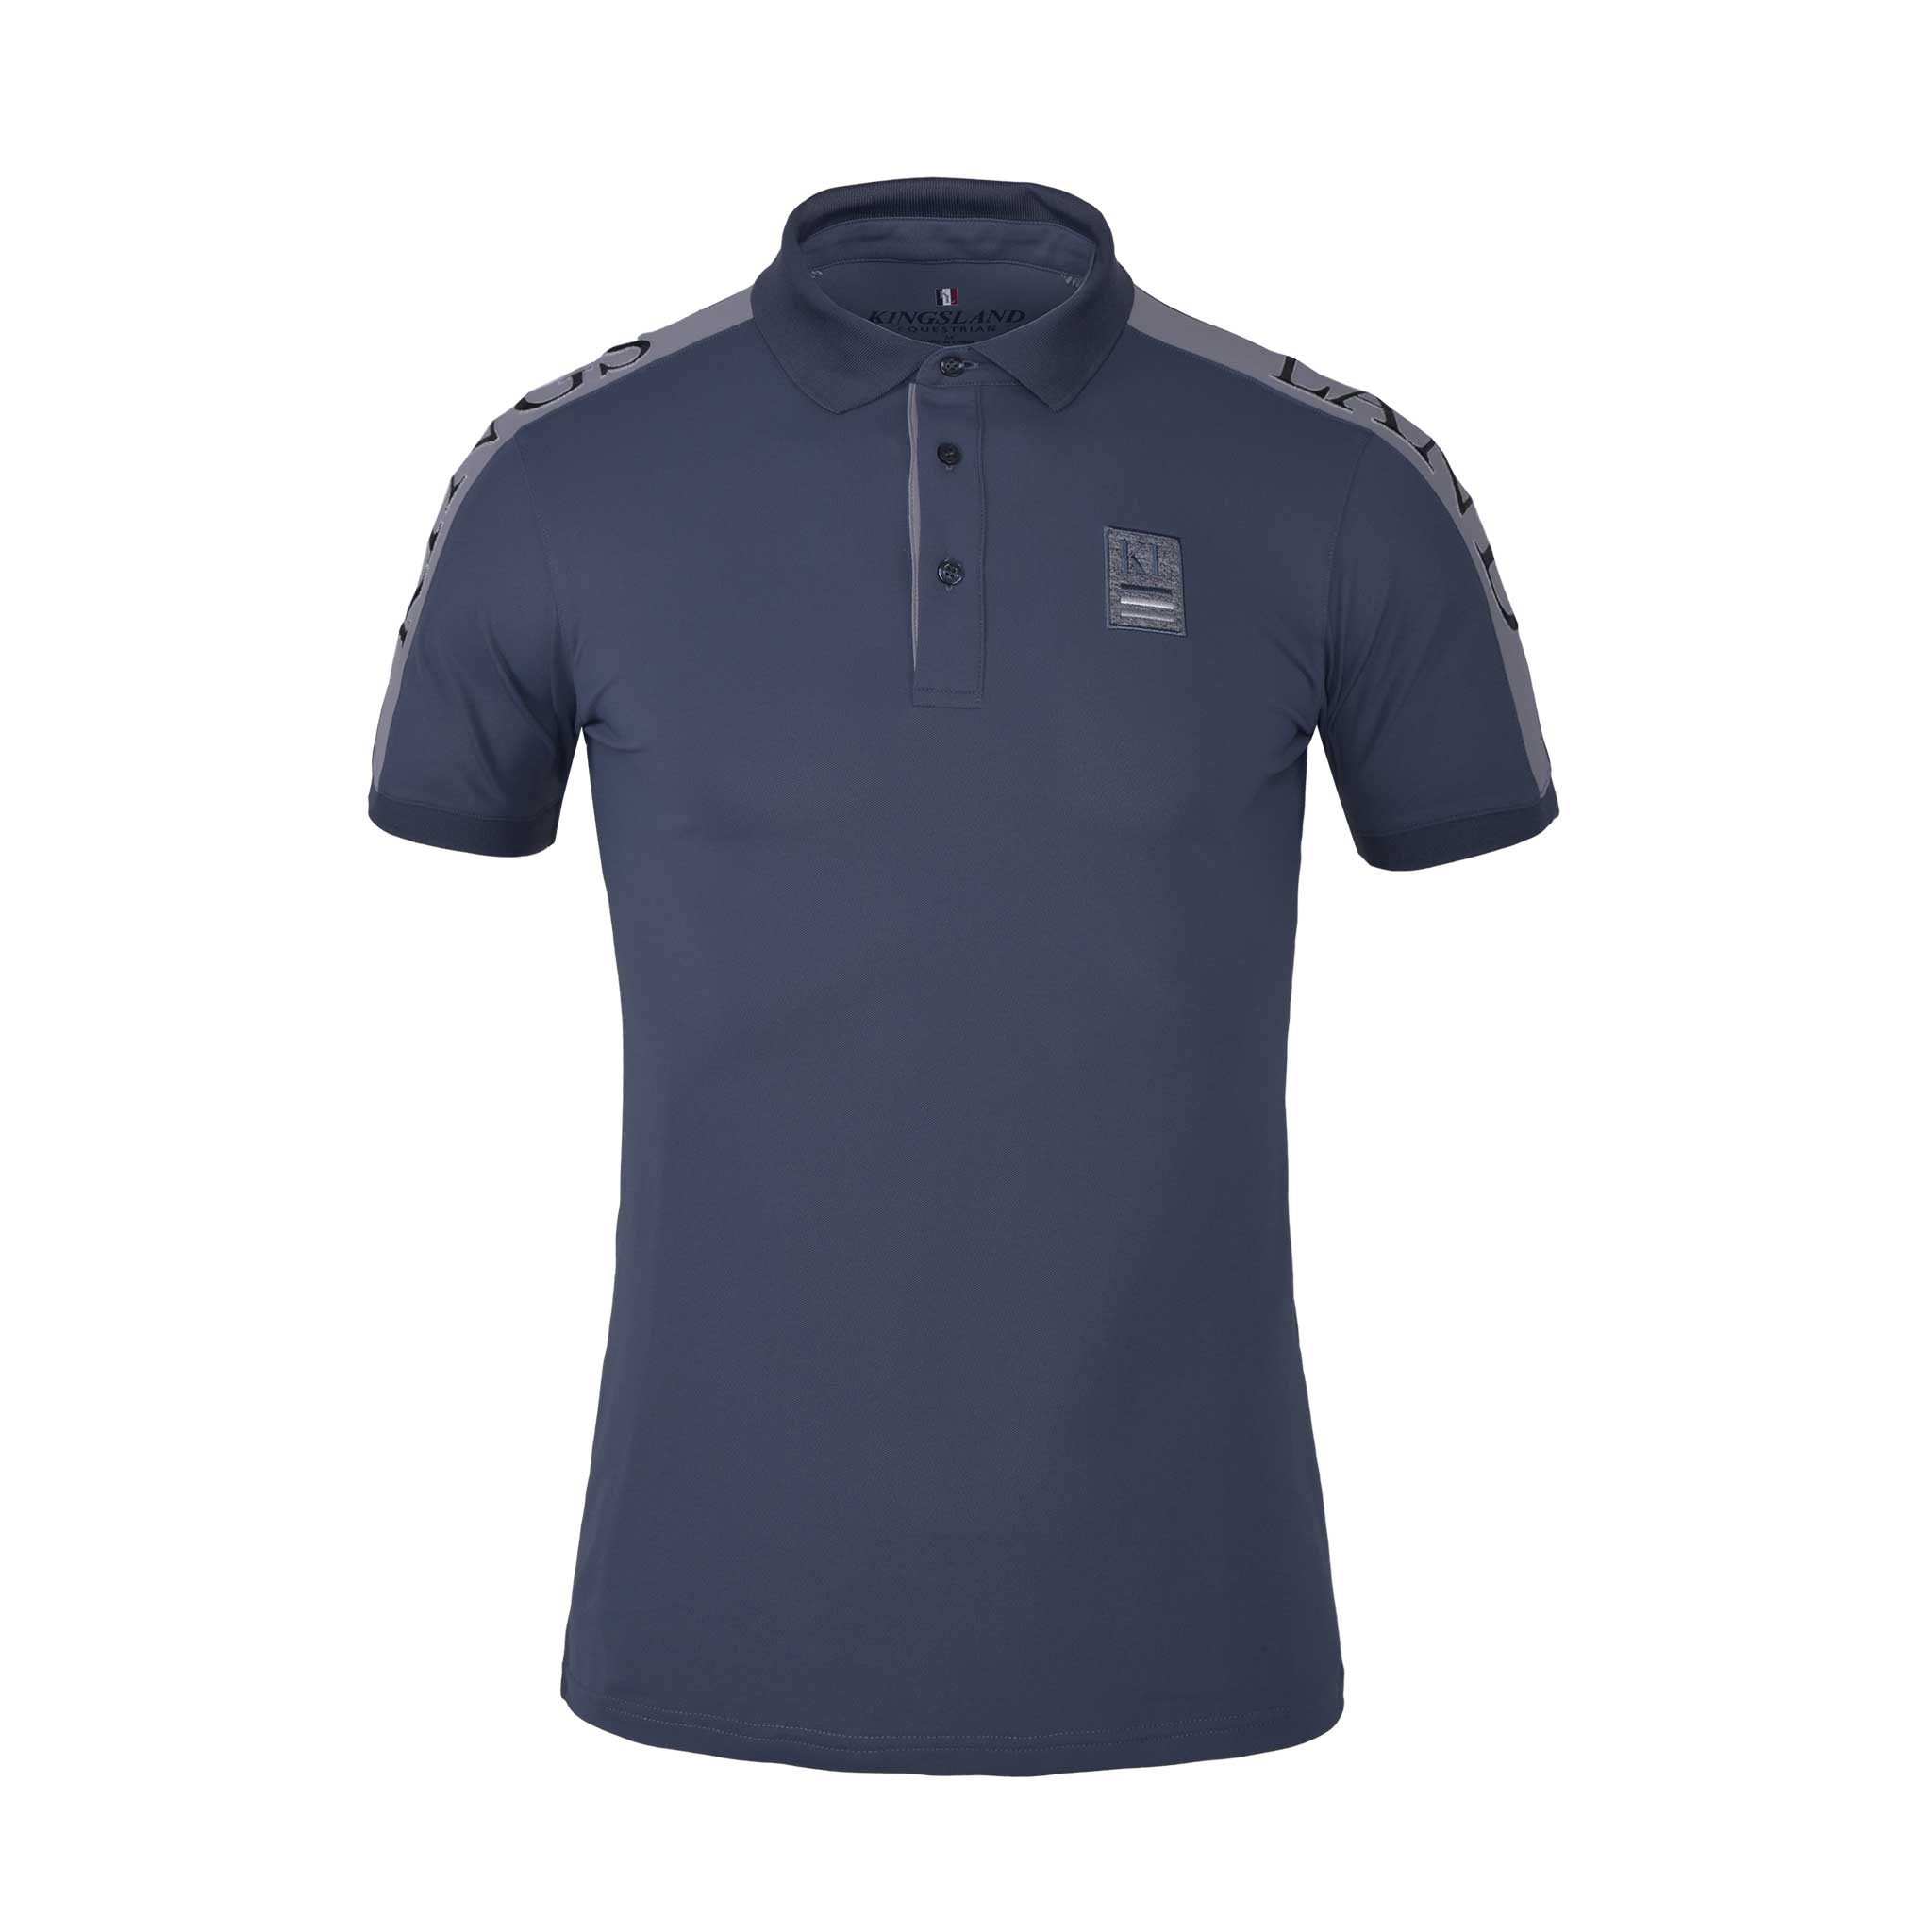 Kingsland Tanana polo shirt - Blue Ombre